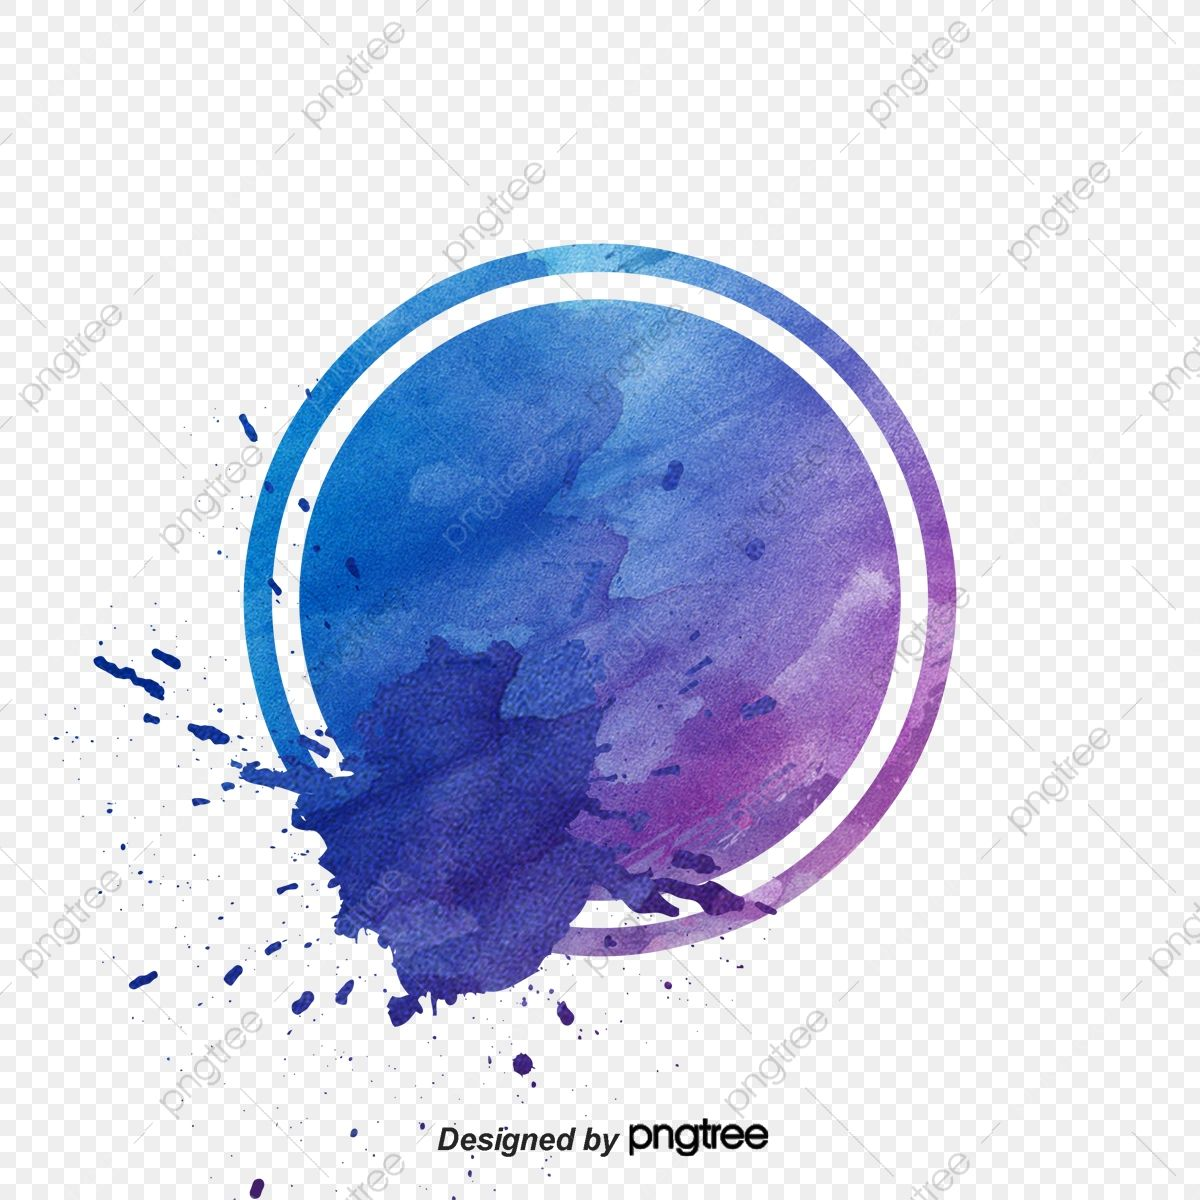 Round Watercolor Ink, Ink Marks, Ink, Splash PNG and